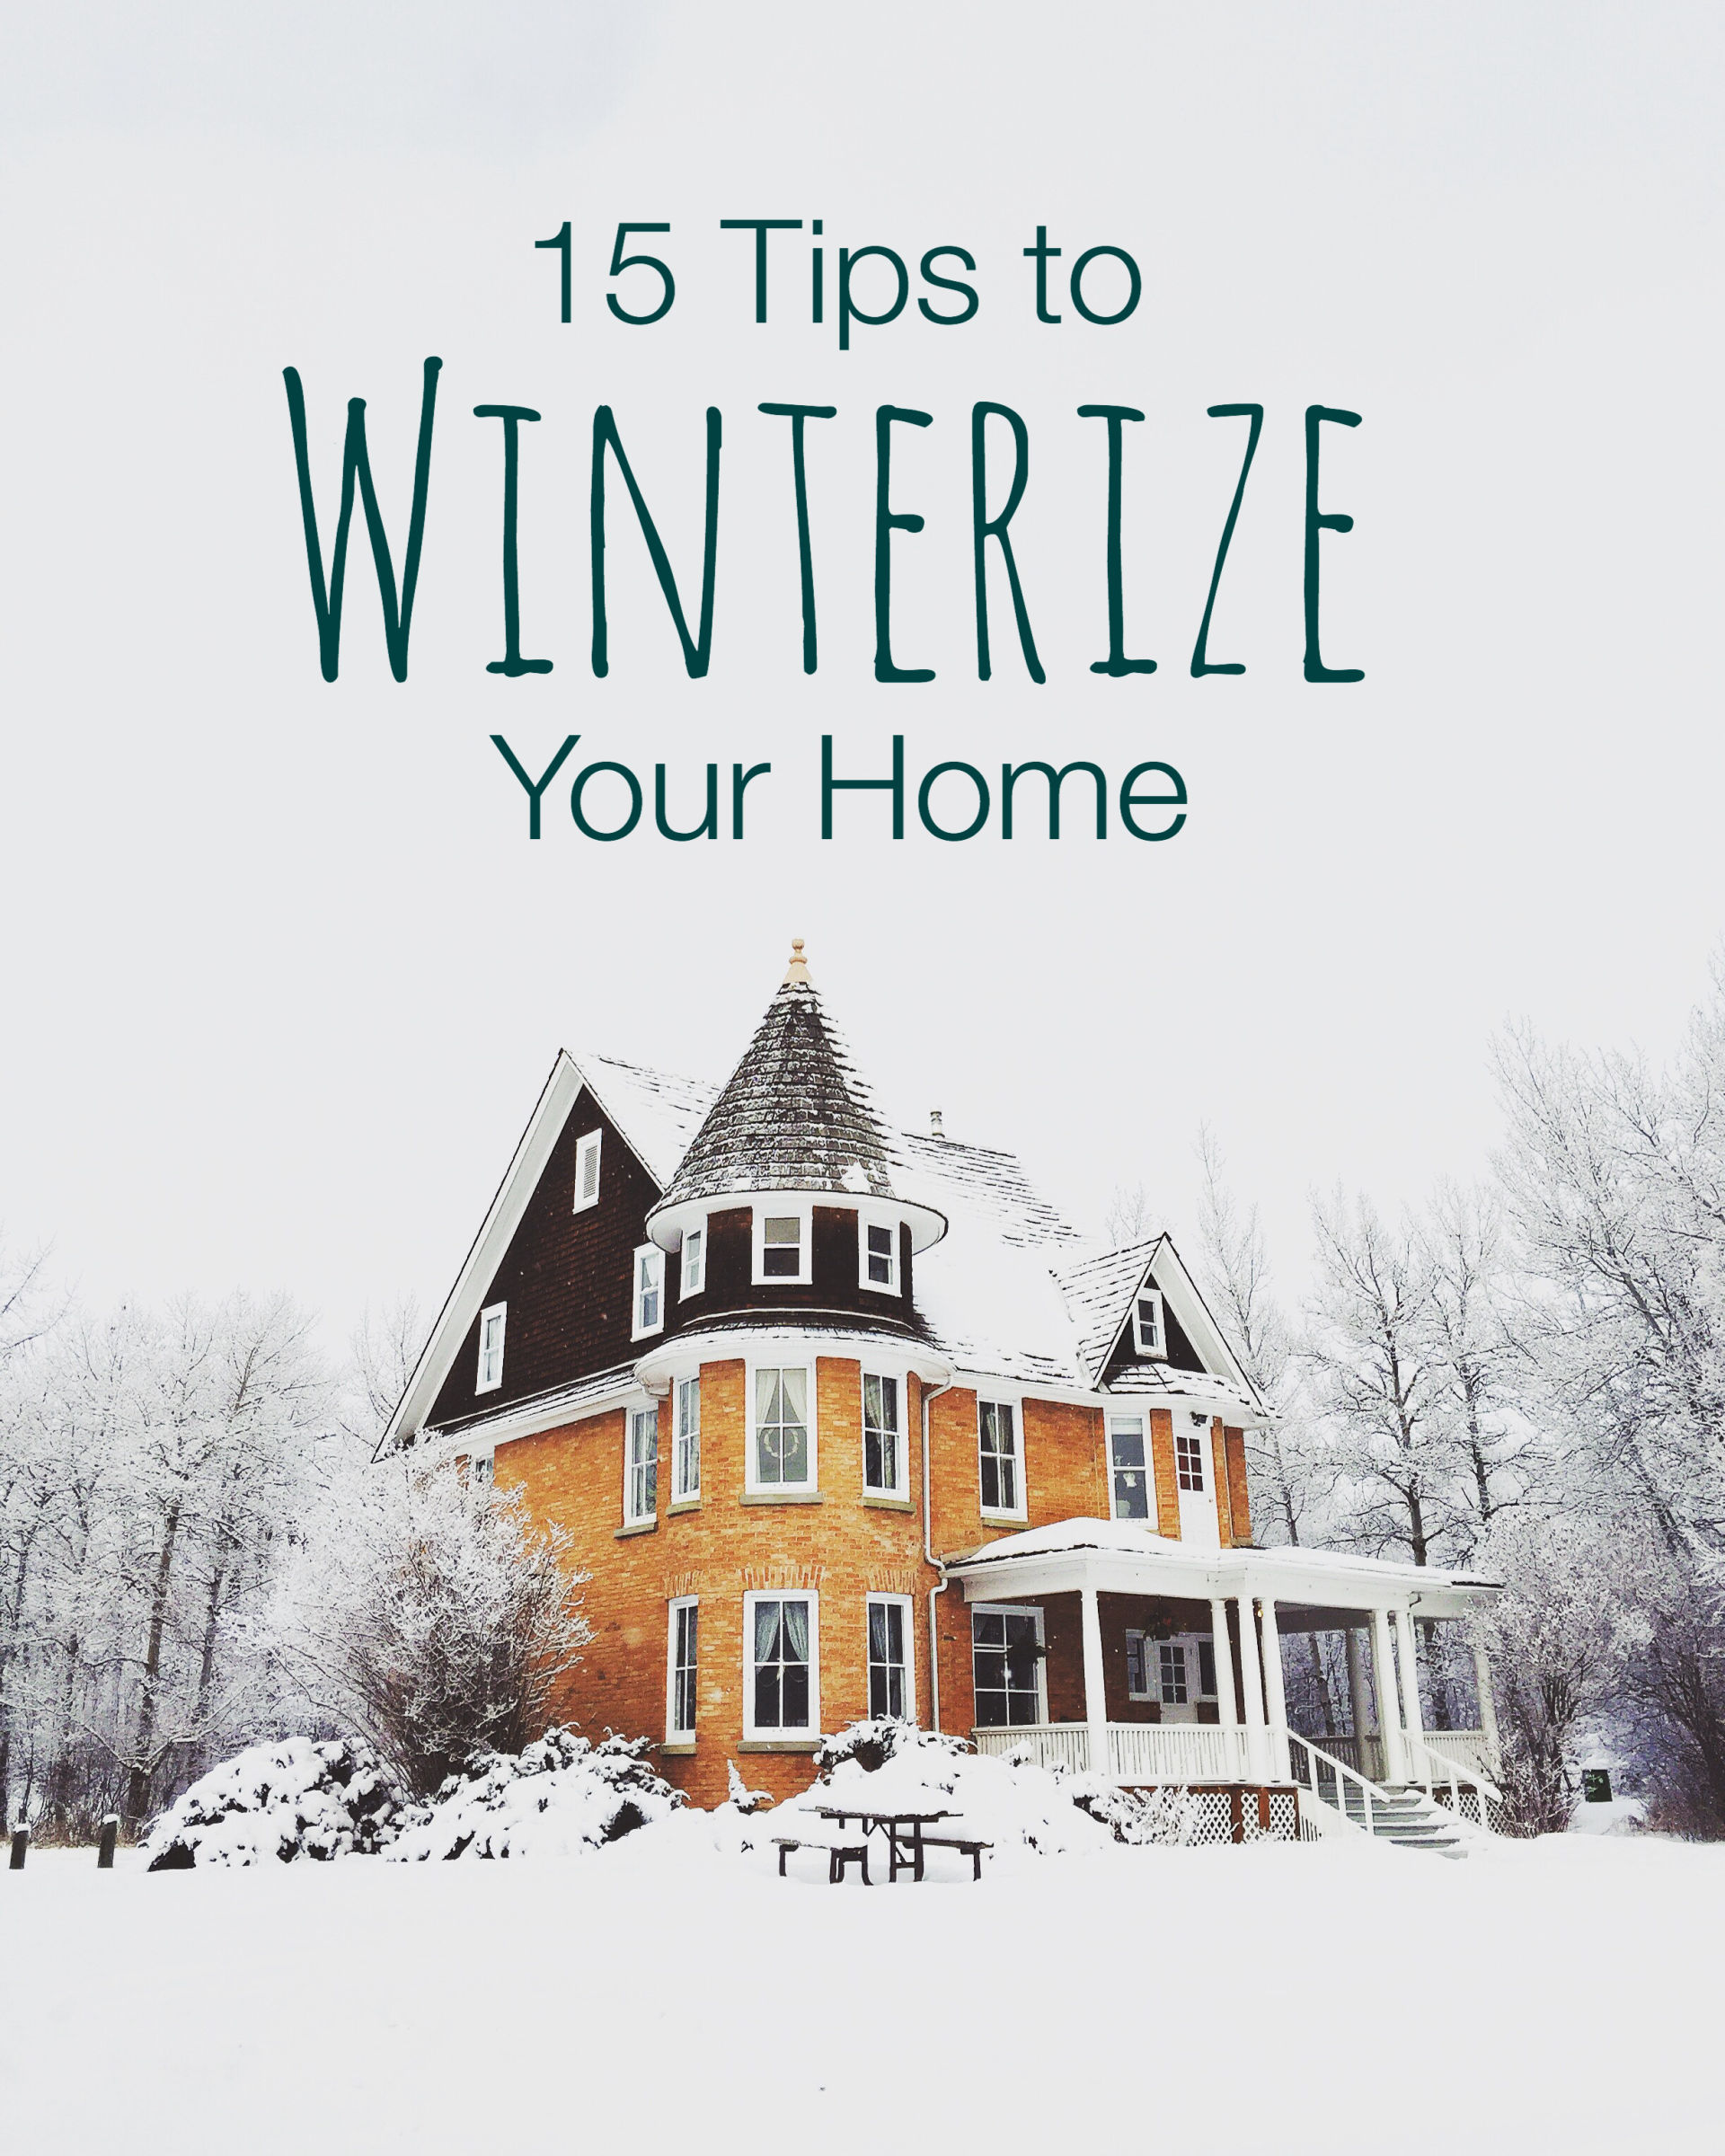 15 Home Maintenance Tips to Get Ready for Winter